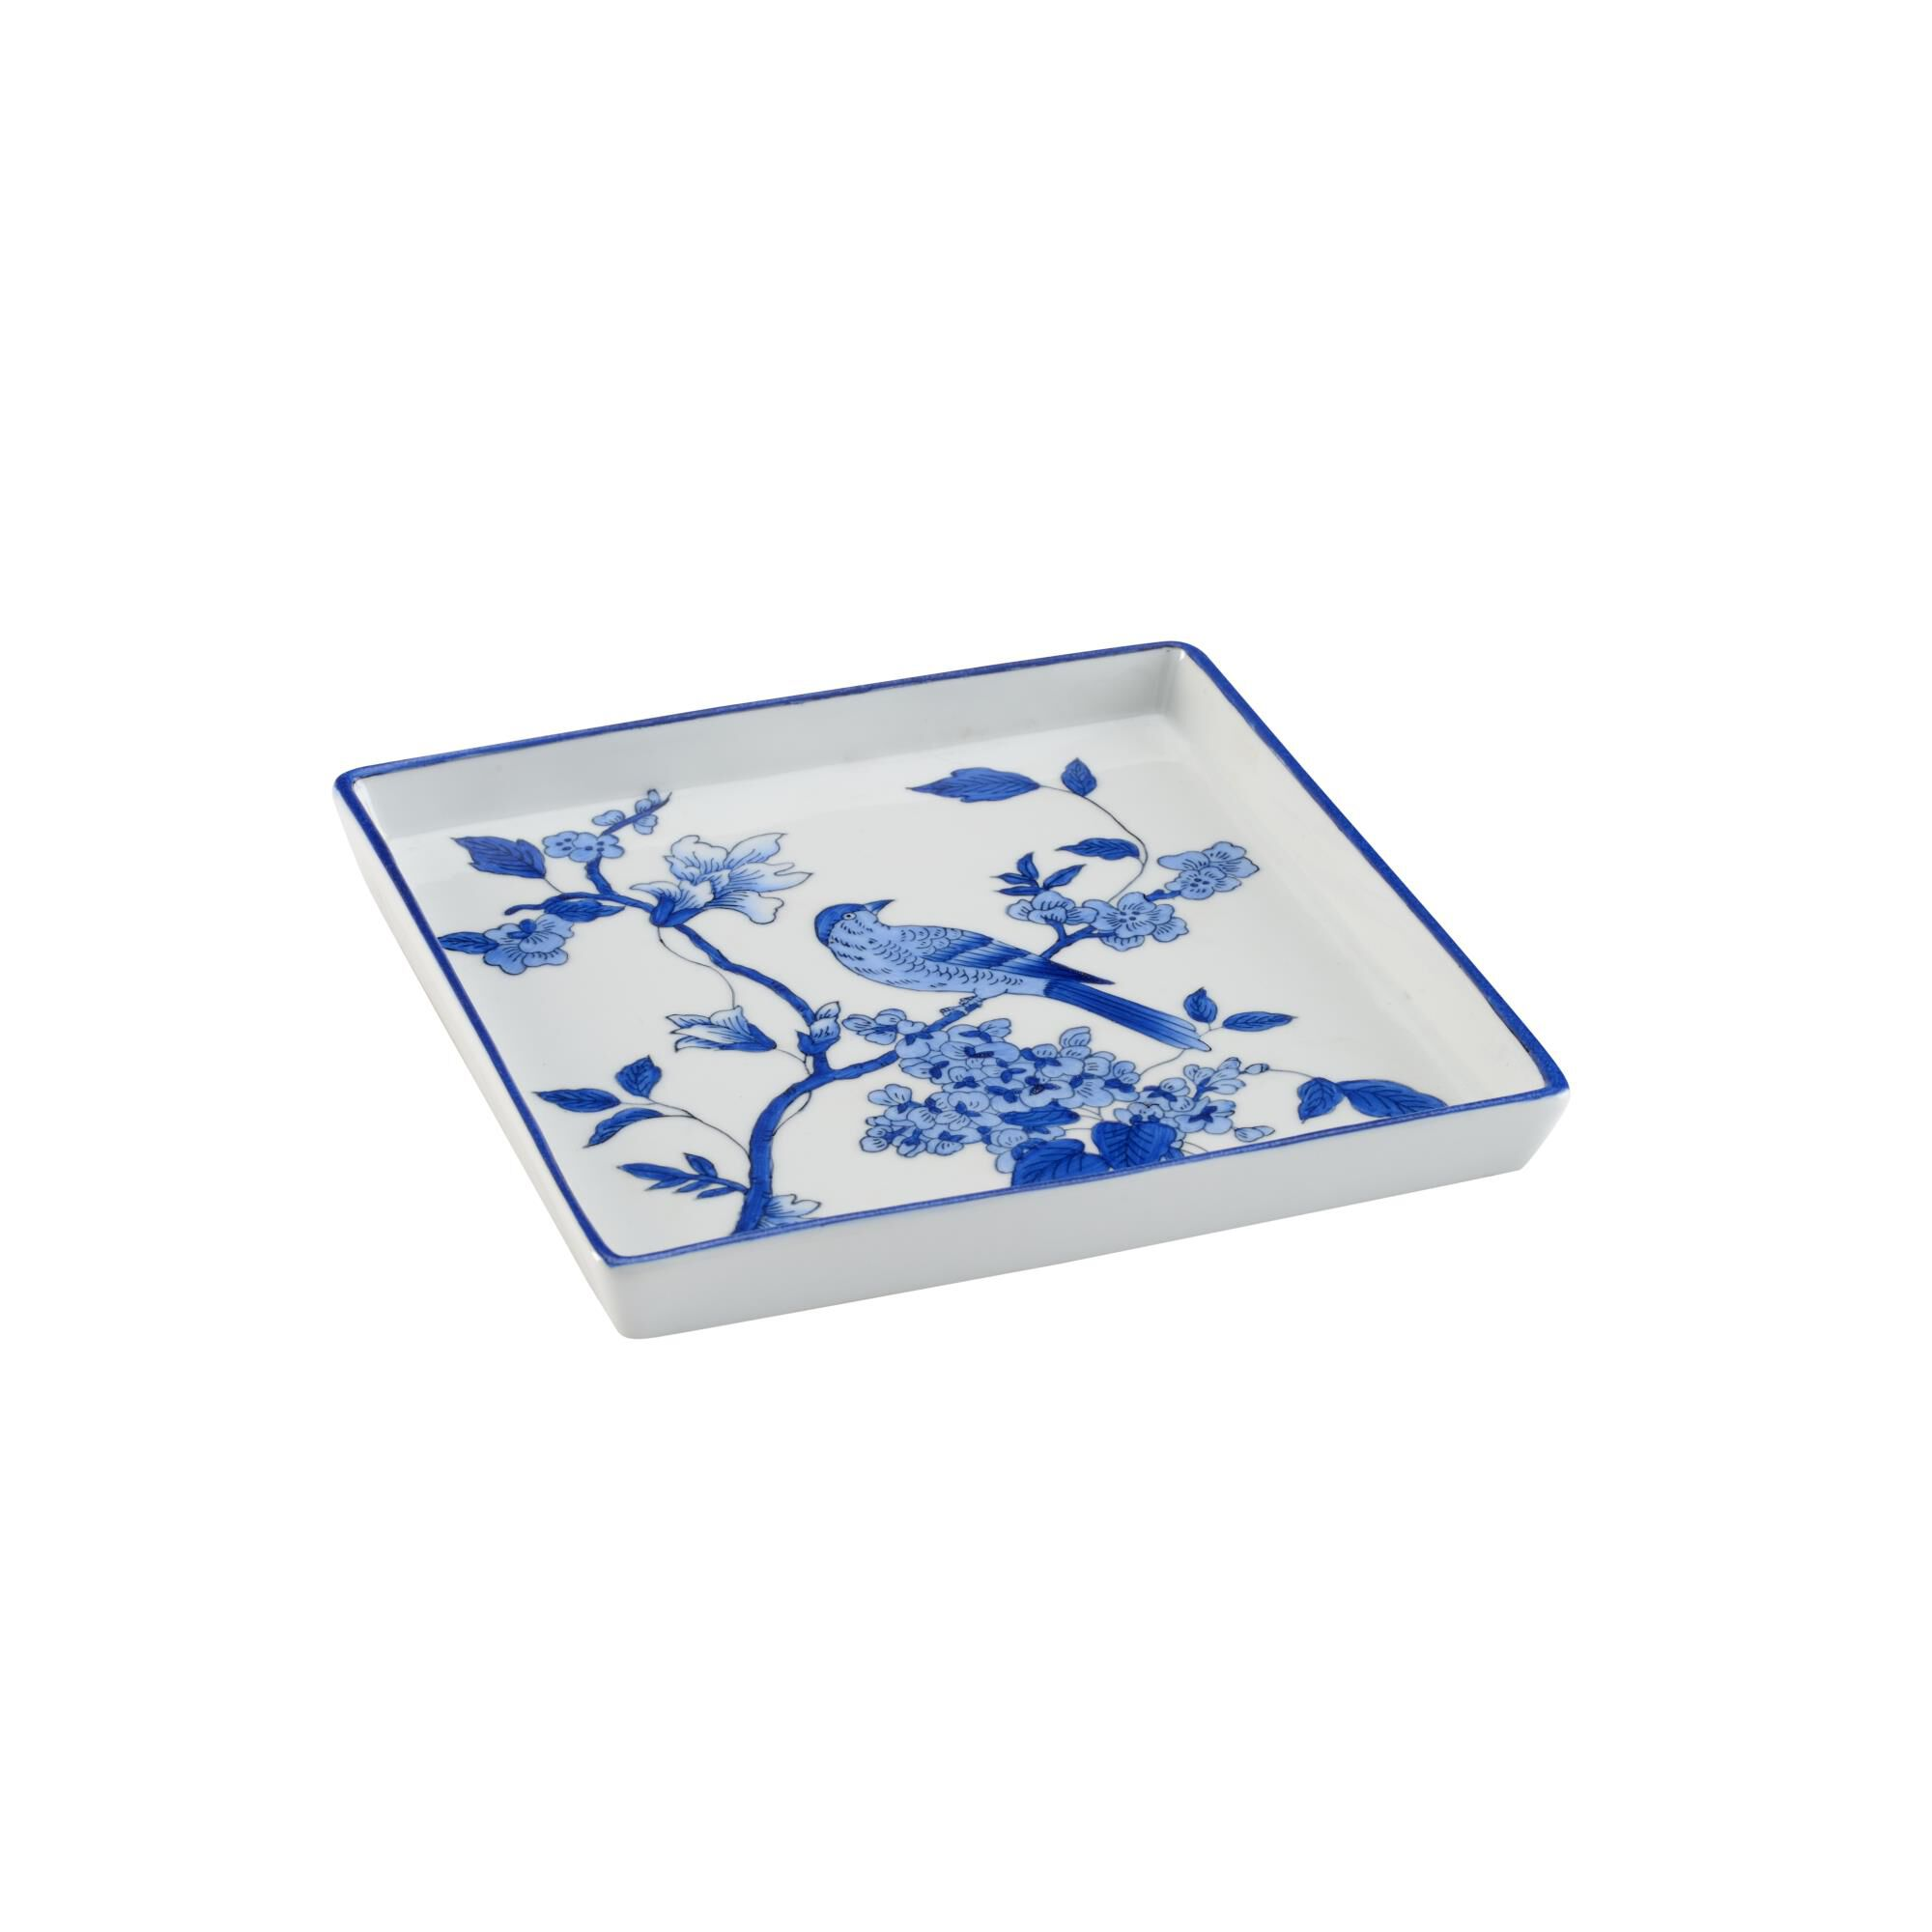 Chelsea House BLUE BIRD TRAY - SQUARE (LG) Tray - 383793 - Traditional (2275170) photo